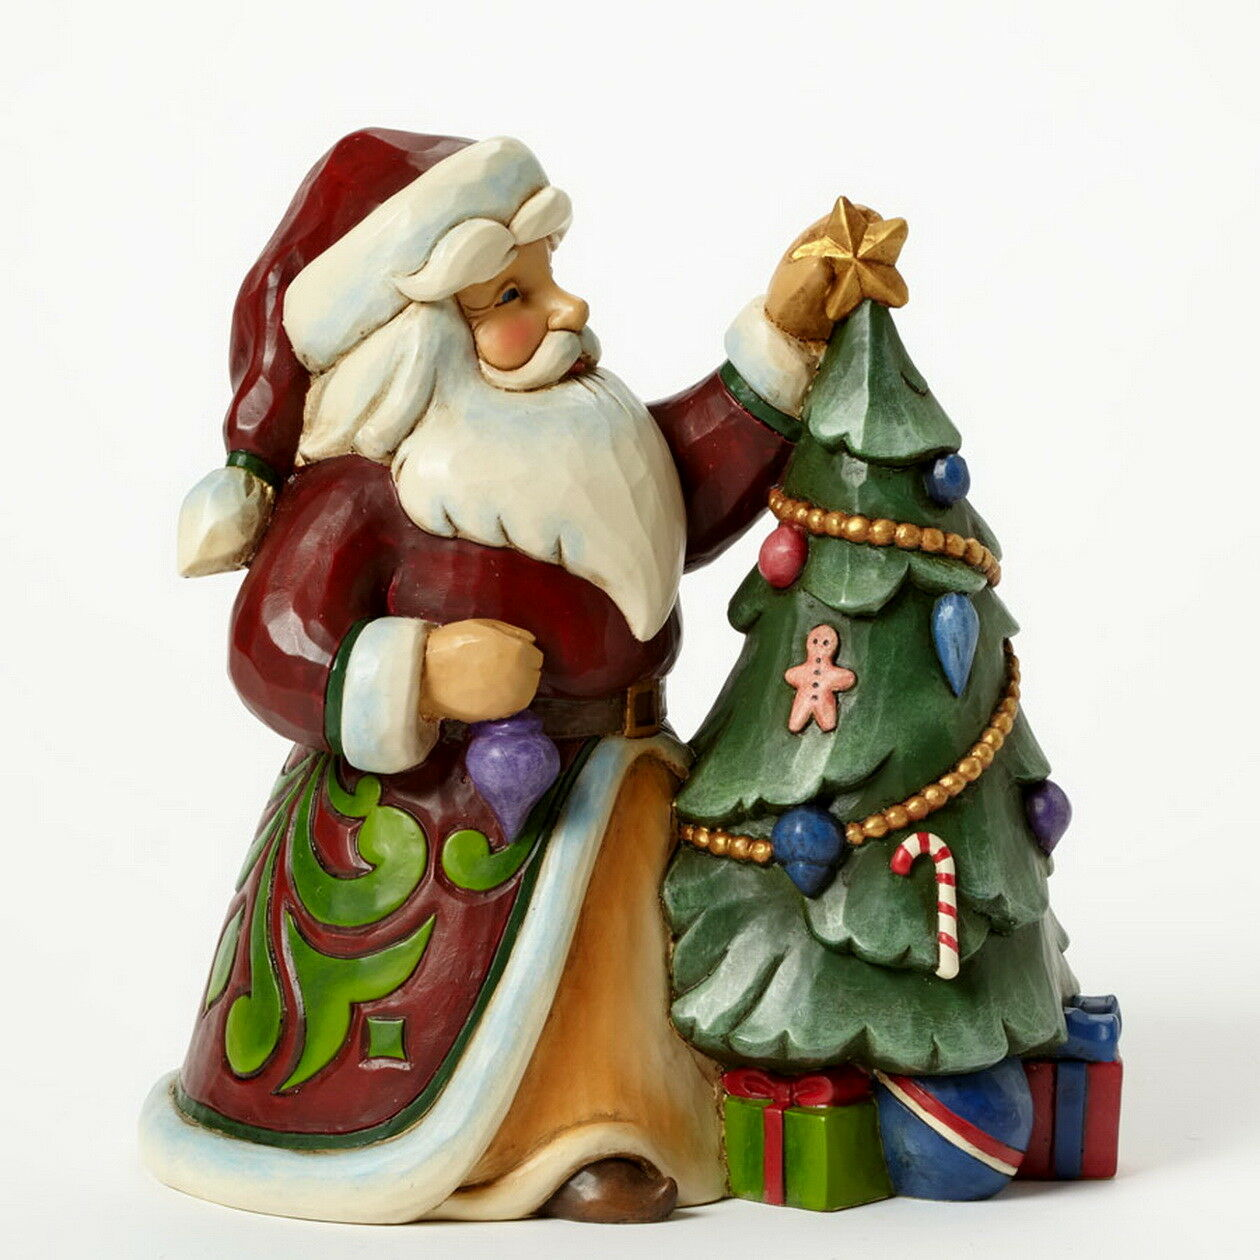 Jim Shore Figur 4044069 4044069 4044069 - ENESCO CHRISTMAS Skulptur -  Santa Decorating Tree  | Stabile Qualität